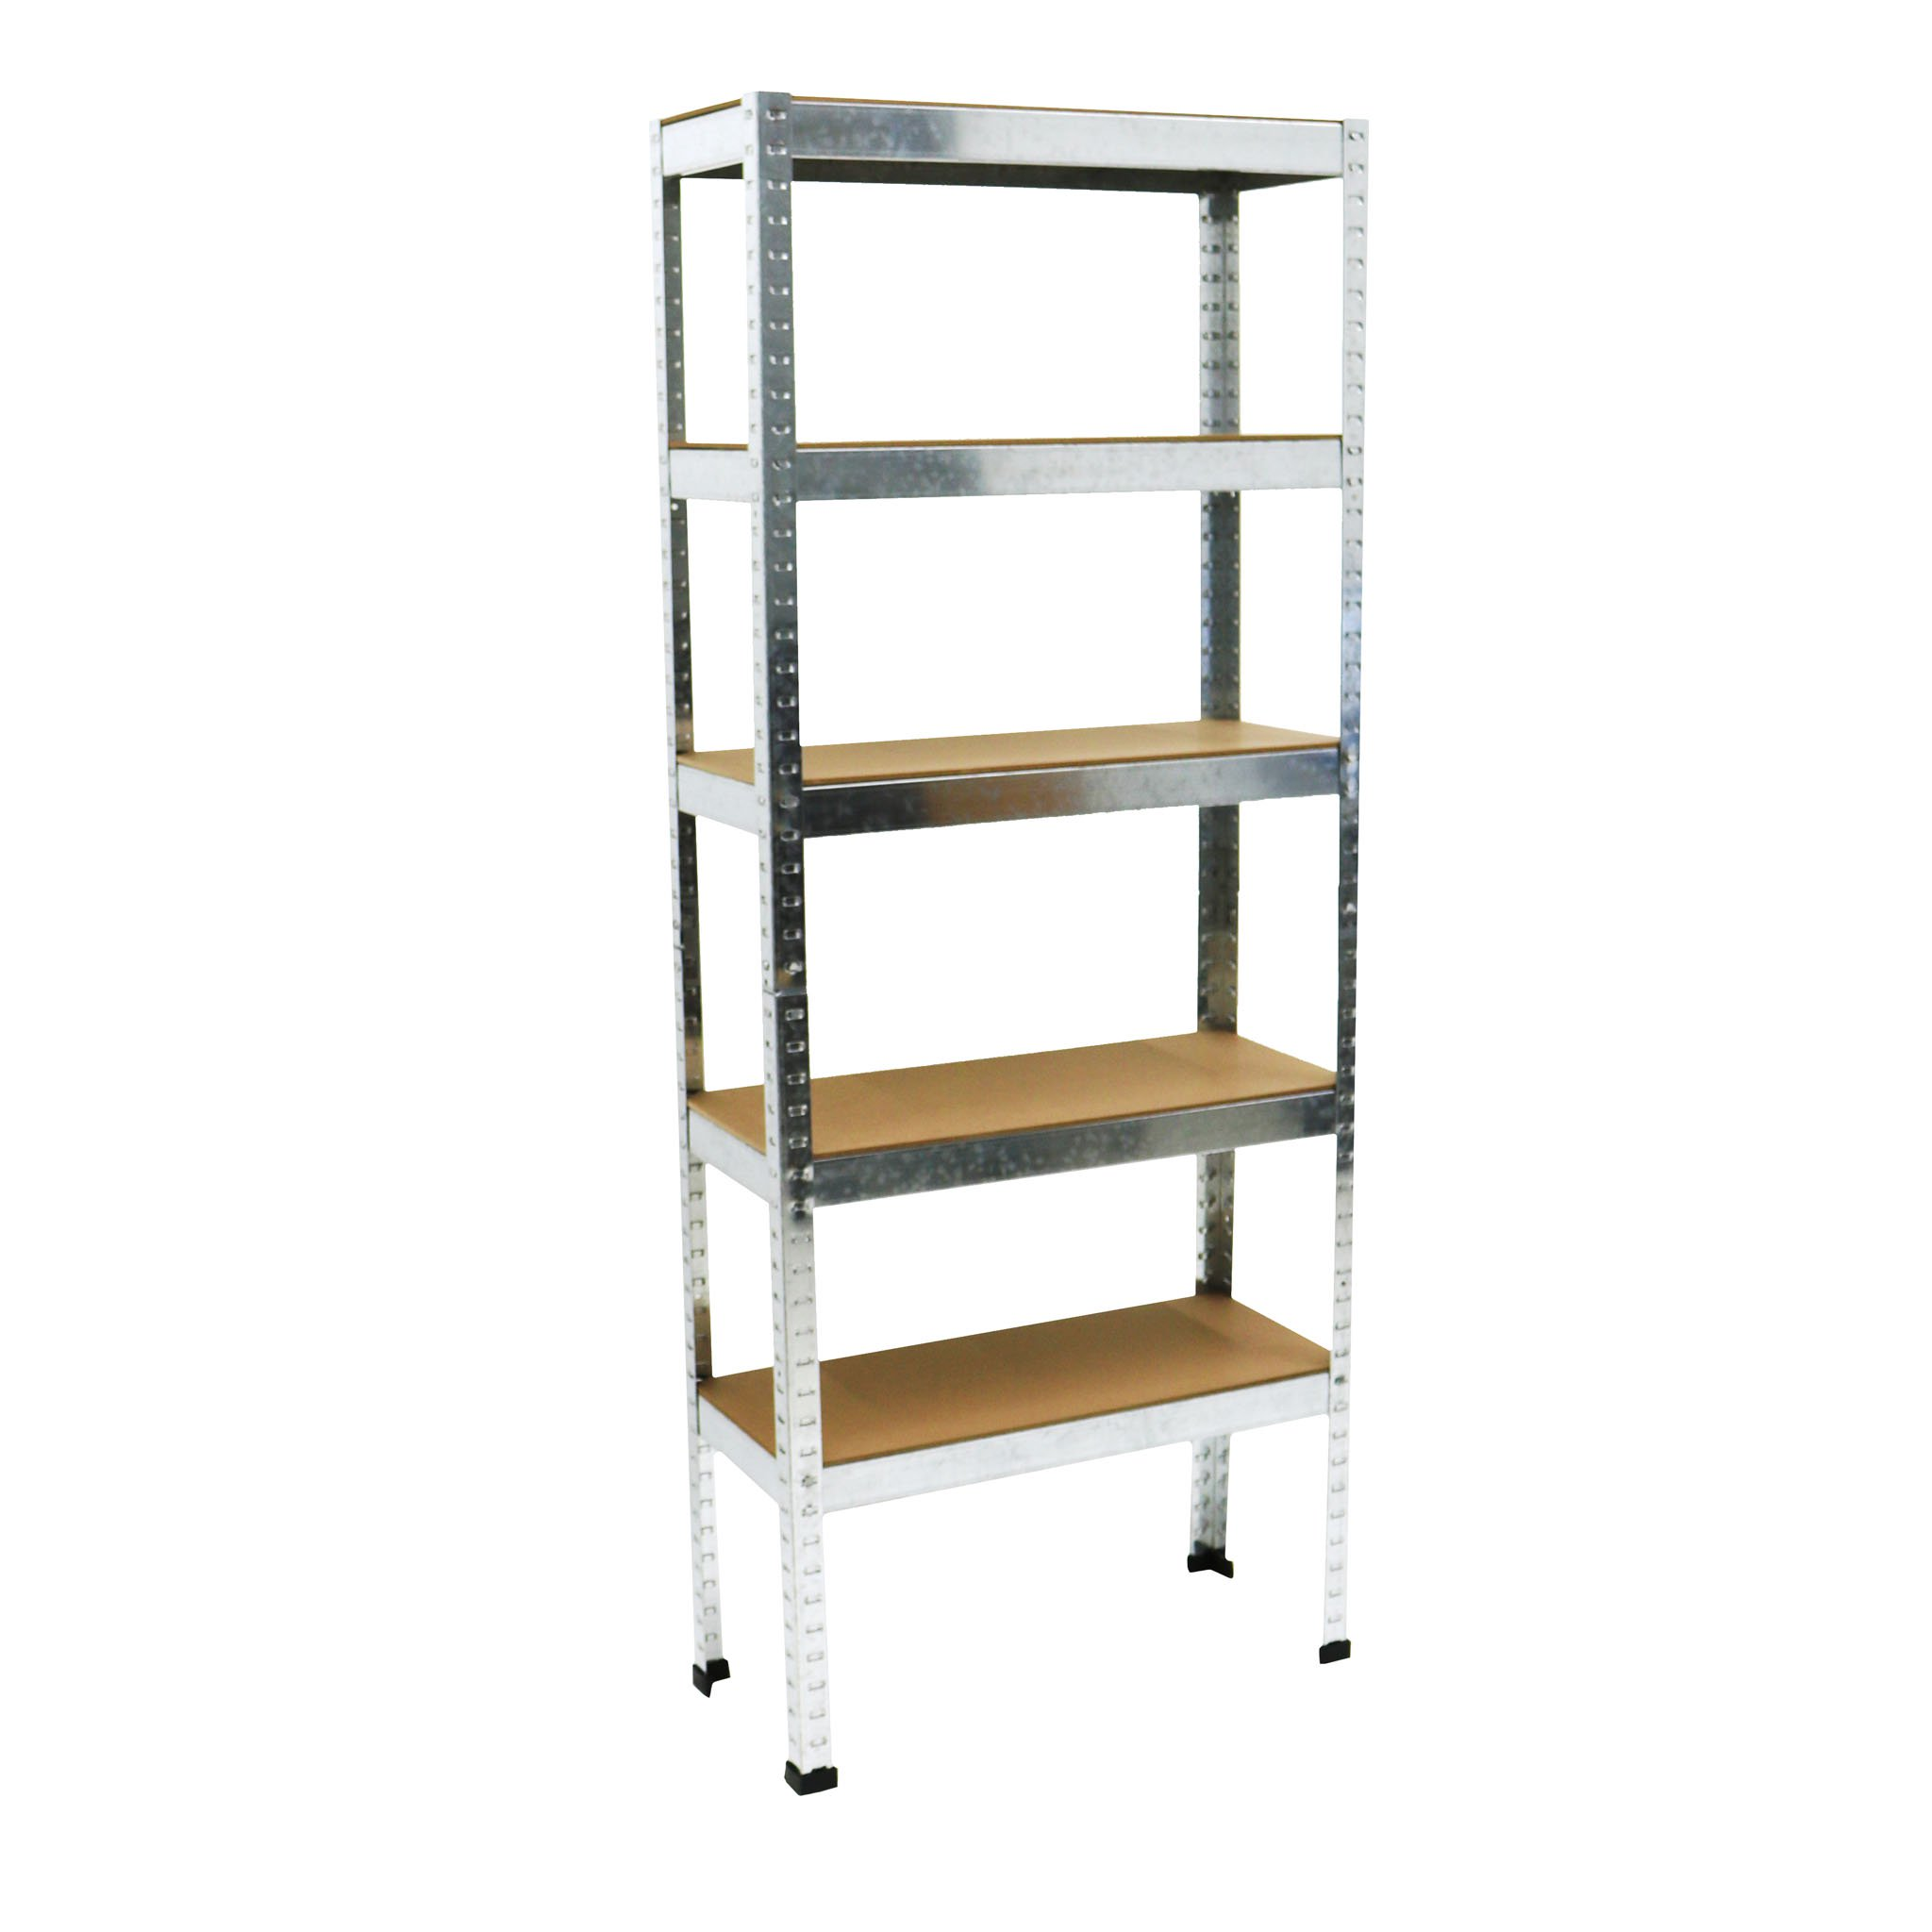 hospital product shelf storage rack steel parry stainless